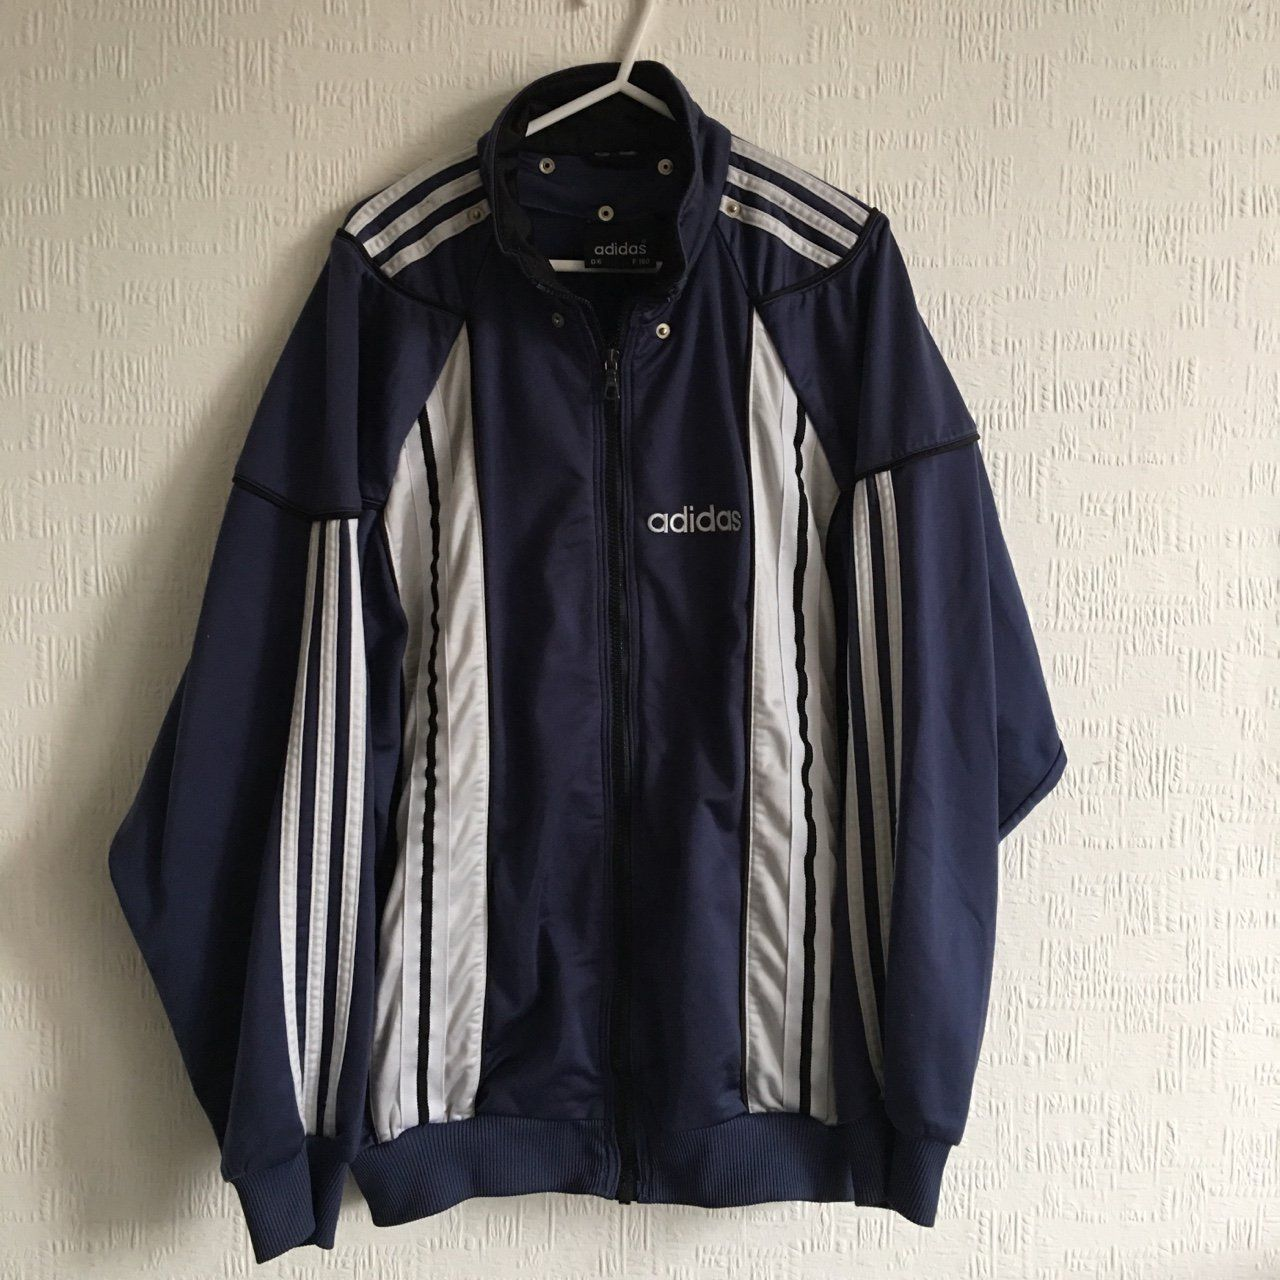 bc743d8e2 Vintage adidas jacket || very good condition || follow my insta for free  postage || ignore ### wavy retro vintage 00s 90s 80s y2k tracksuit coat